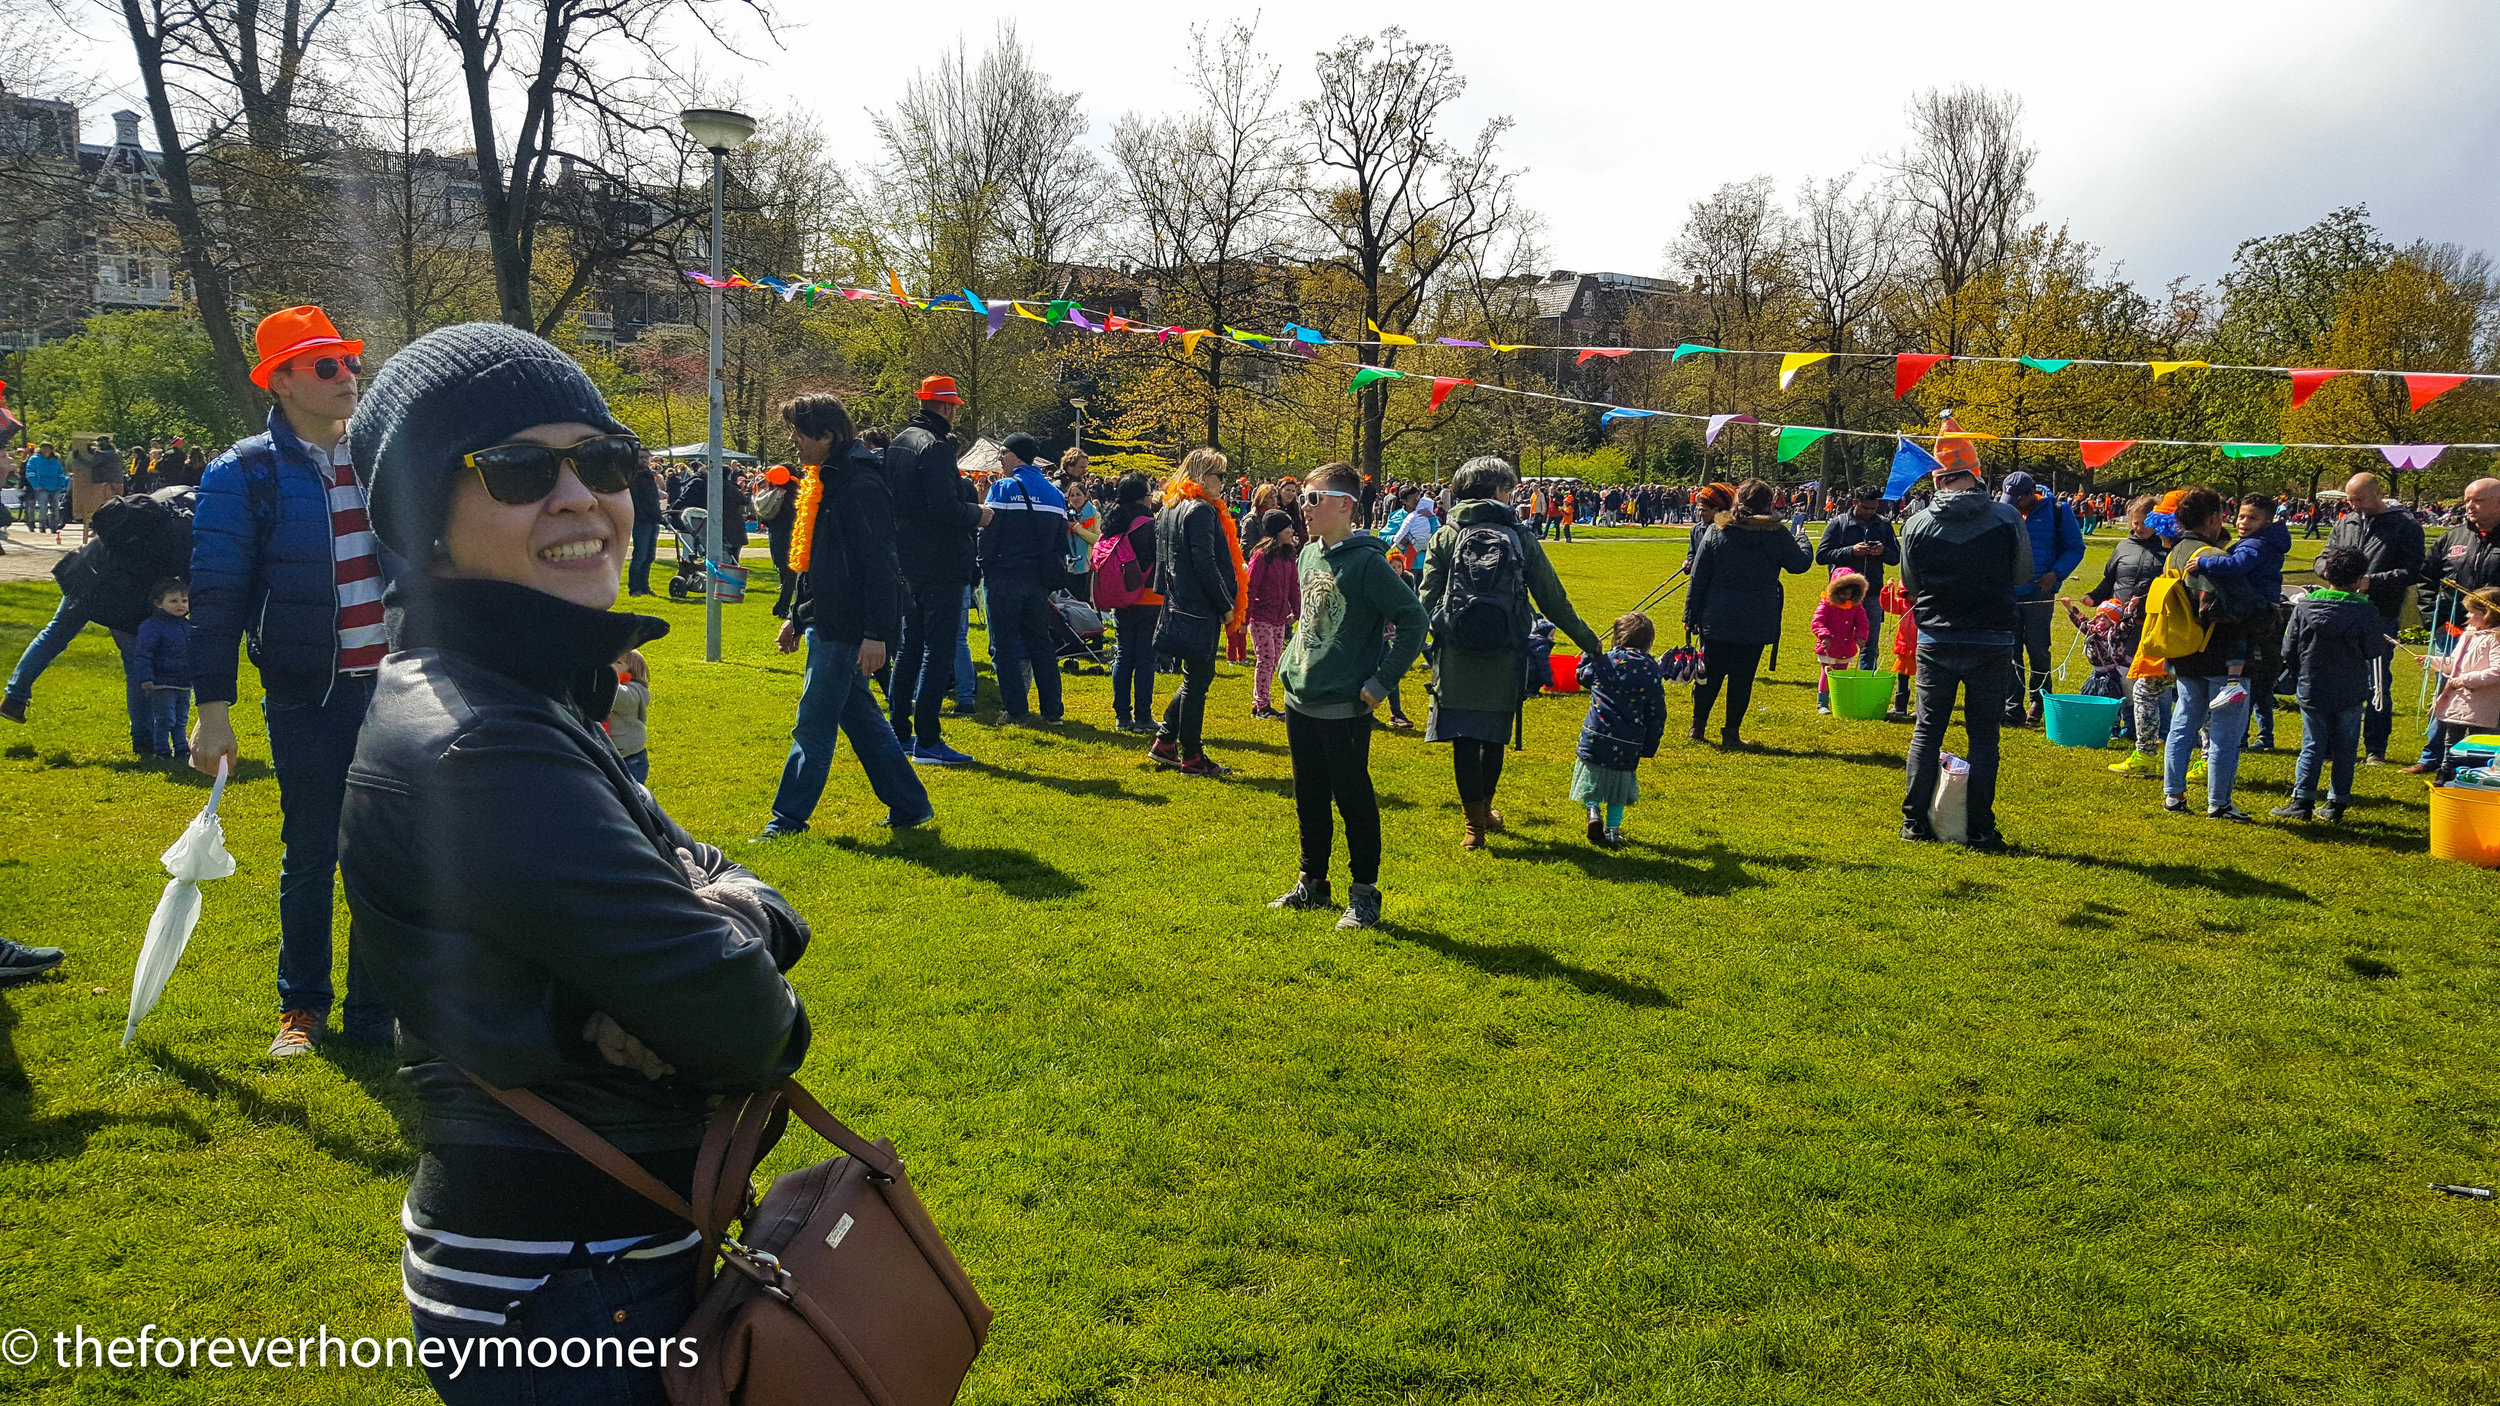 Festivities at Vondelpark on King's Day